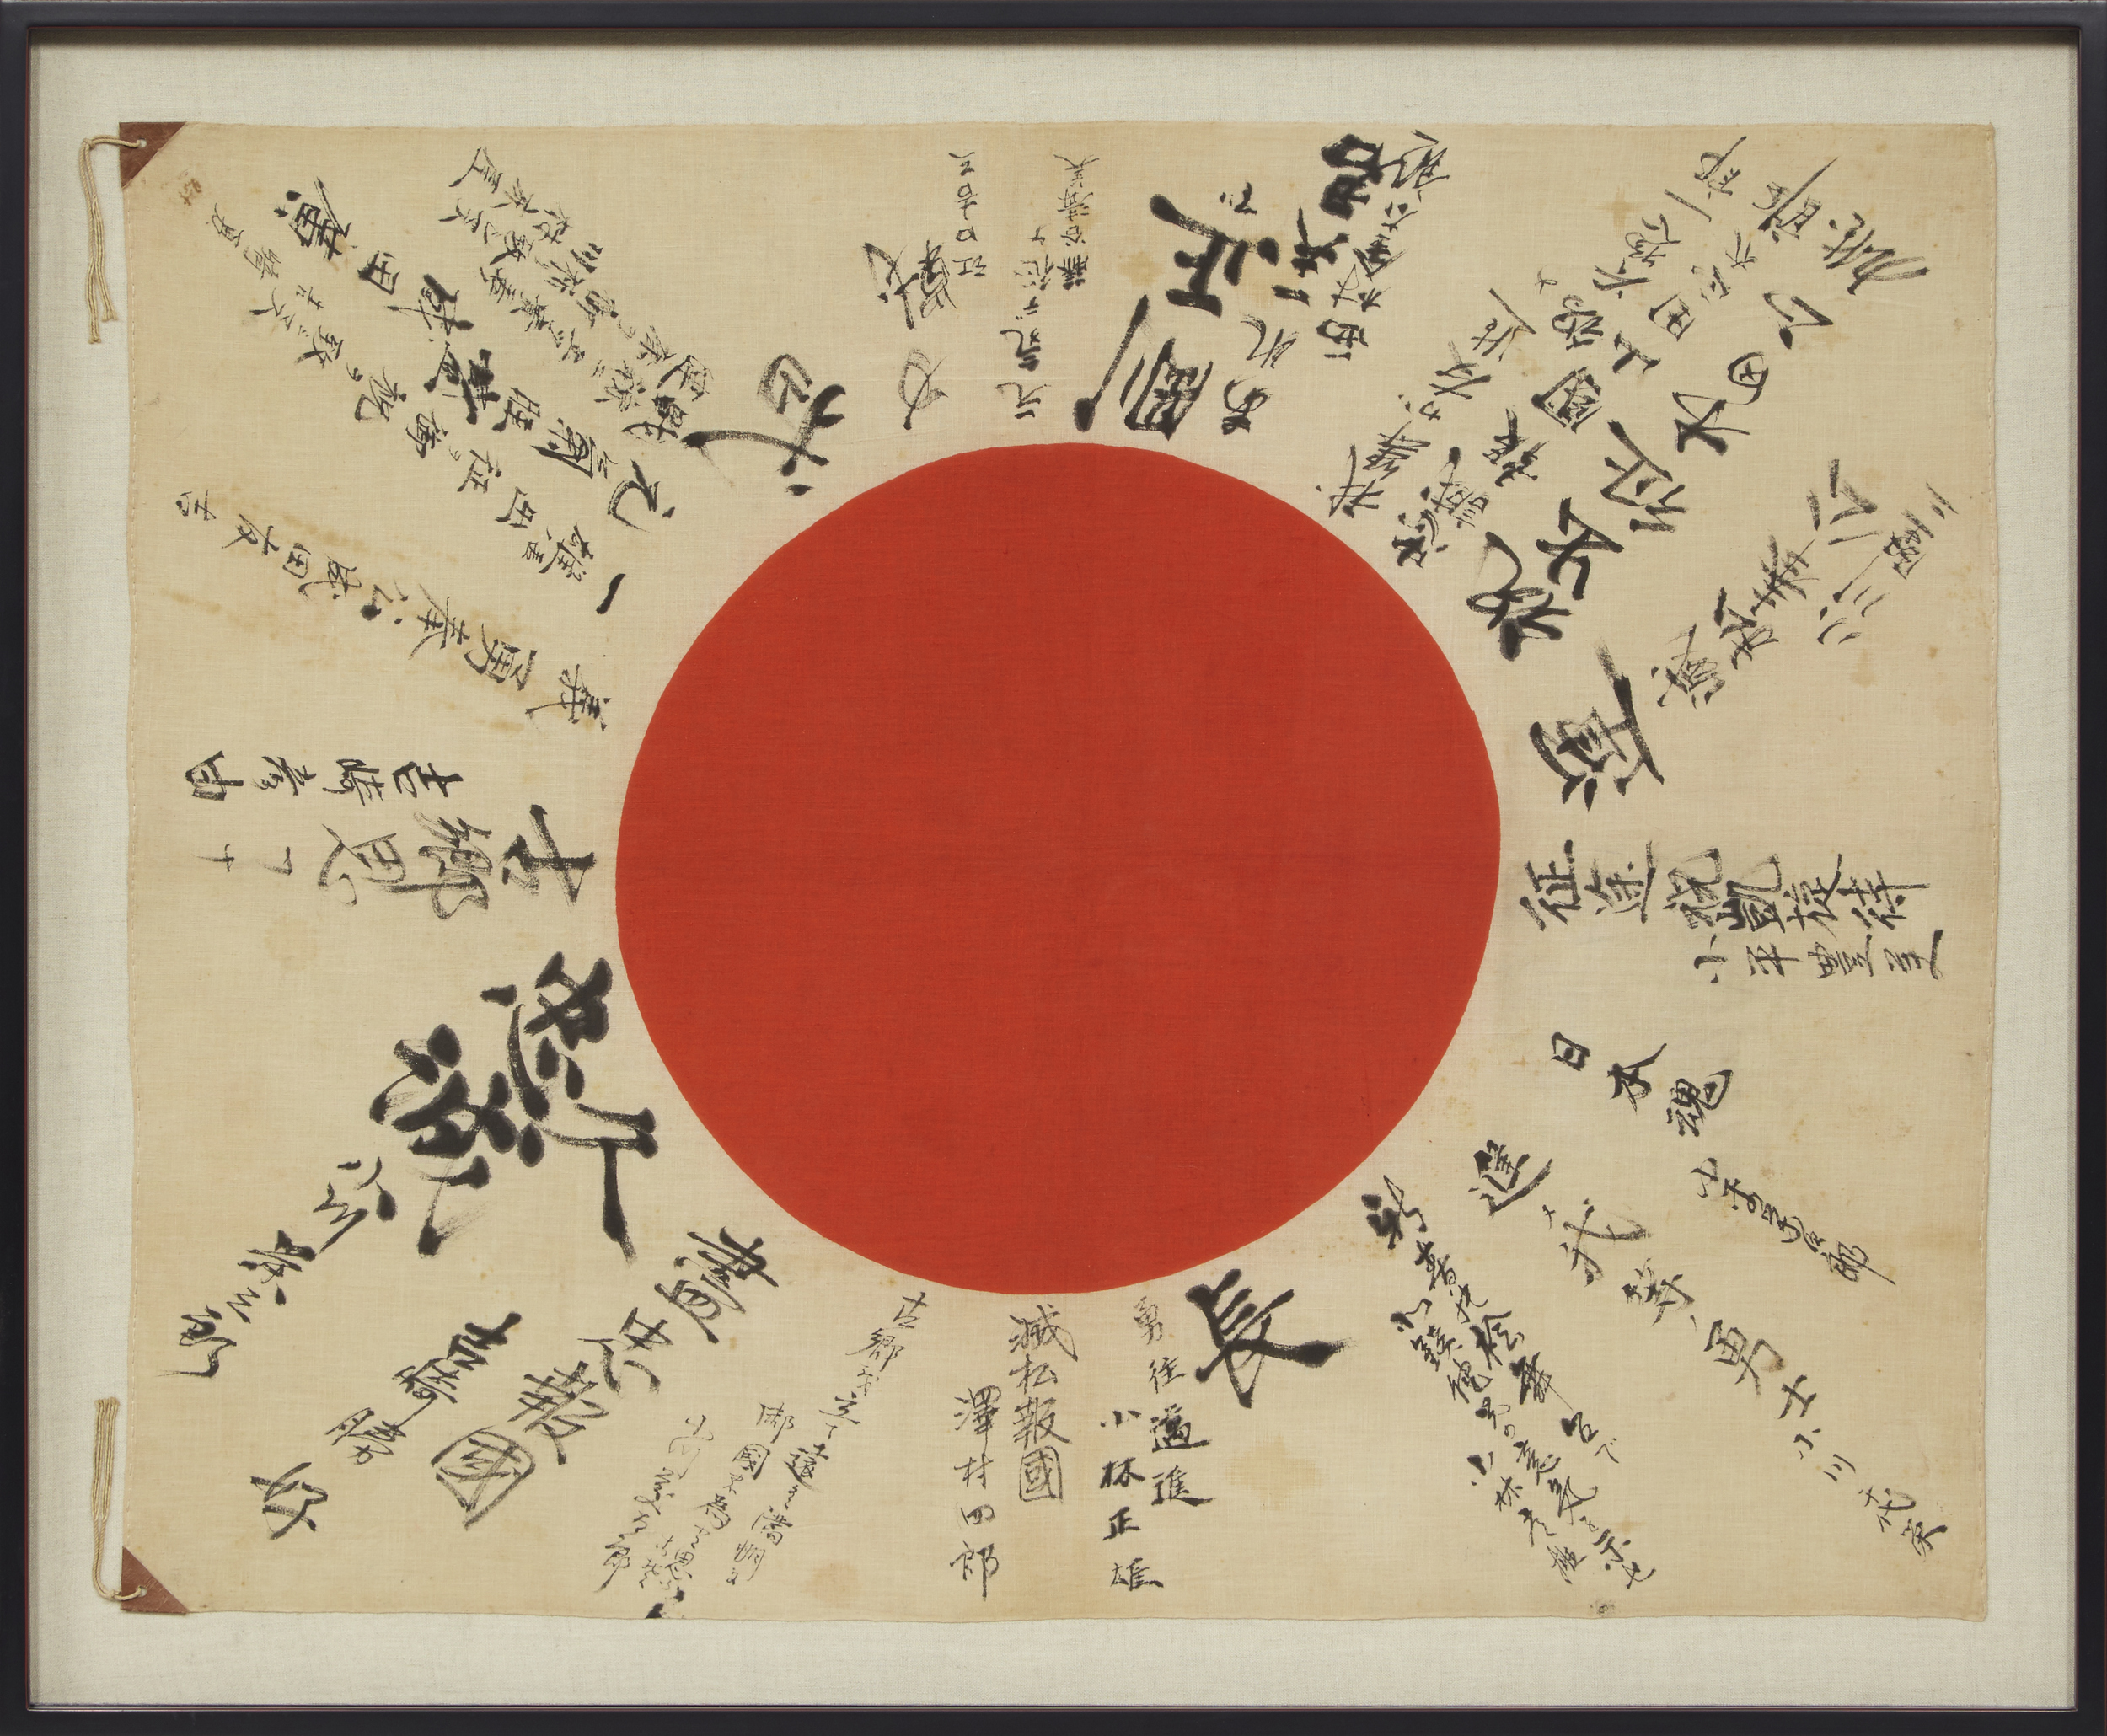 Framed with acid-free, archival materials, this yosegaki hinomaru is now protected from dirt and grime, humidity and temperature fluctuations, and harmful UV rays.